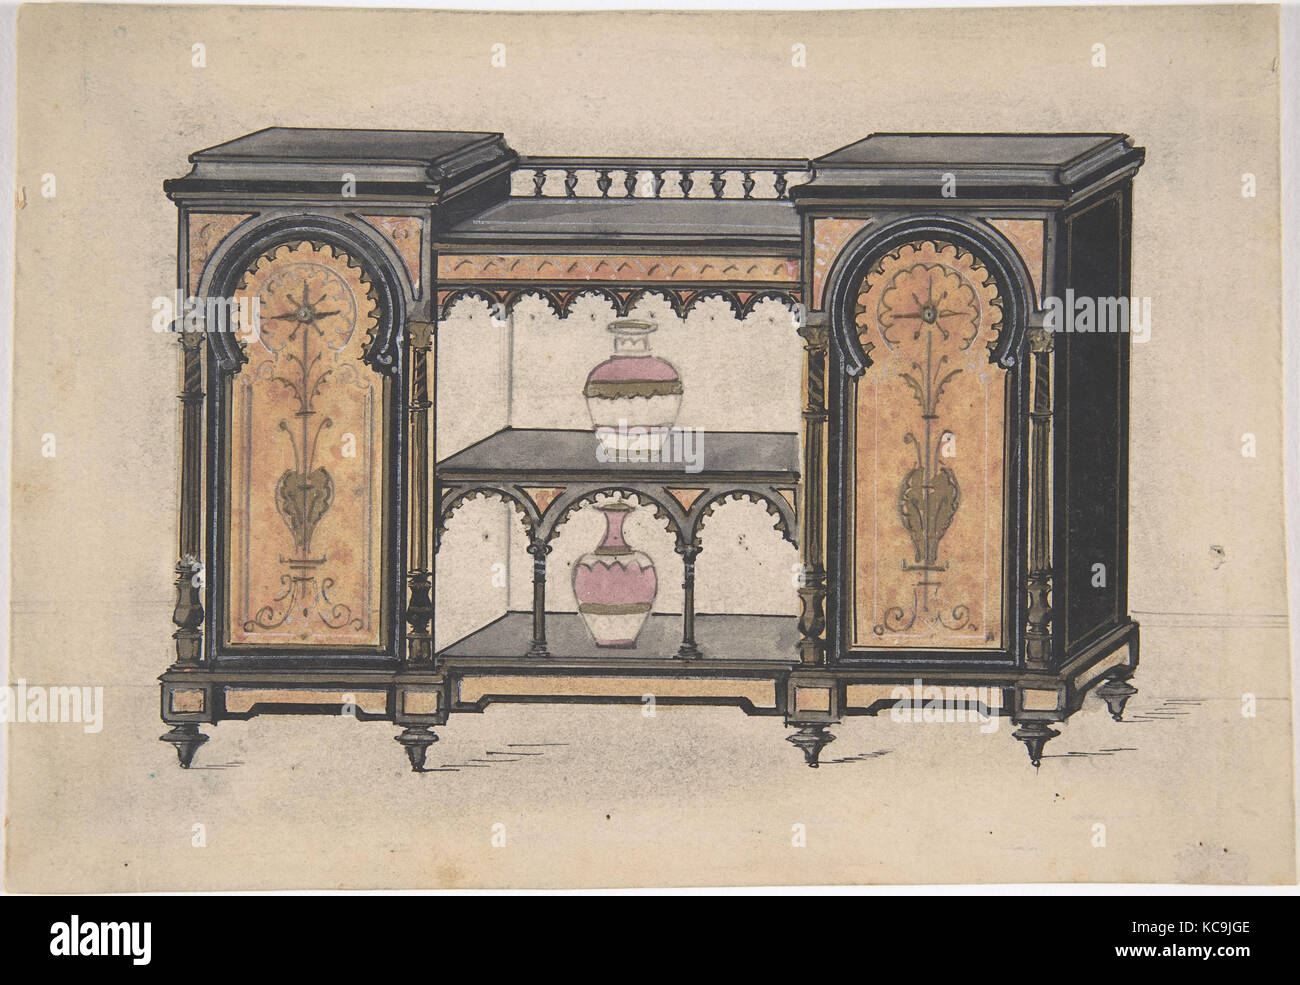 Design for a Cabinet with Two Central Shelves and Arched Doors, Anonymous, British, 19th century, 19th century - Stock Image